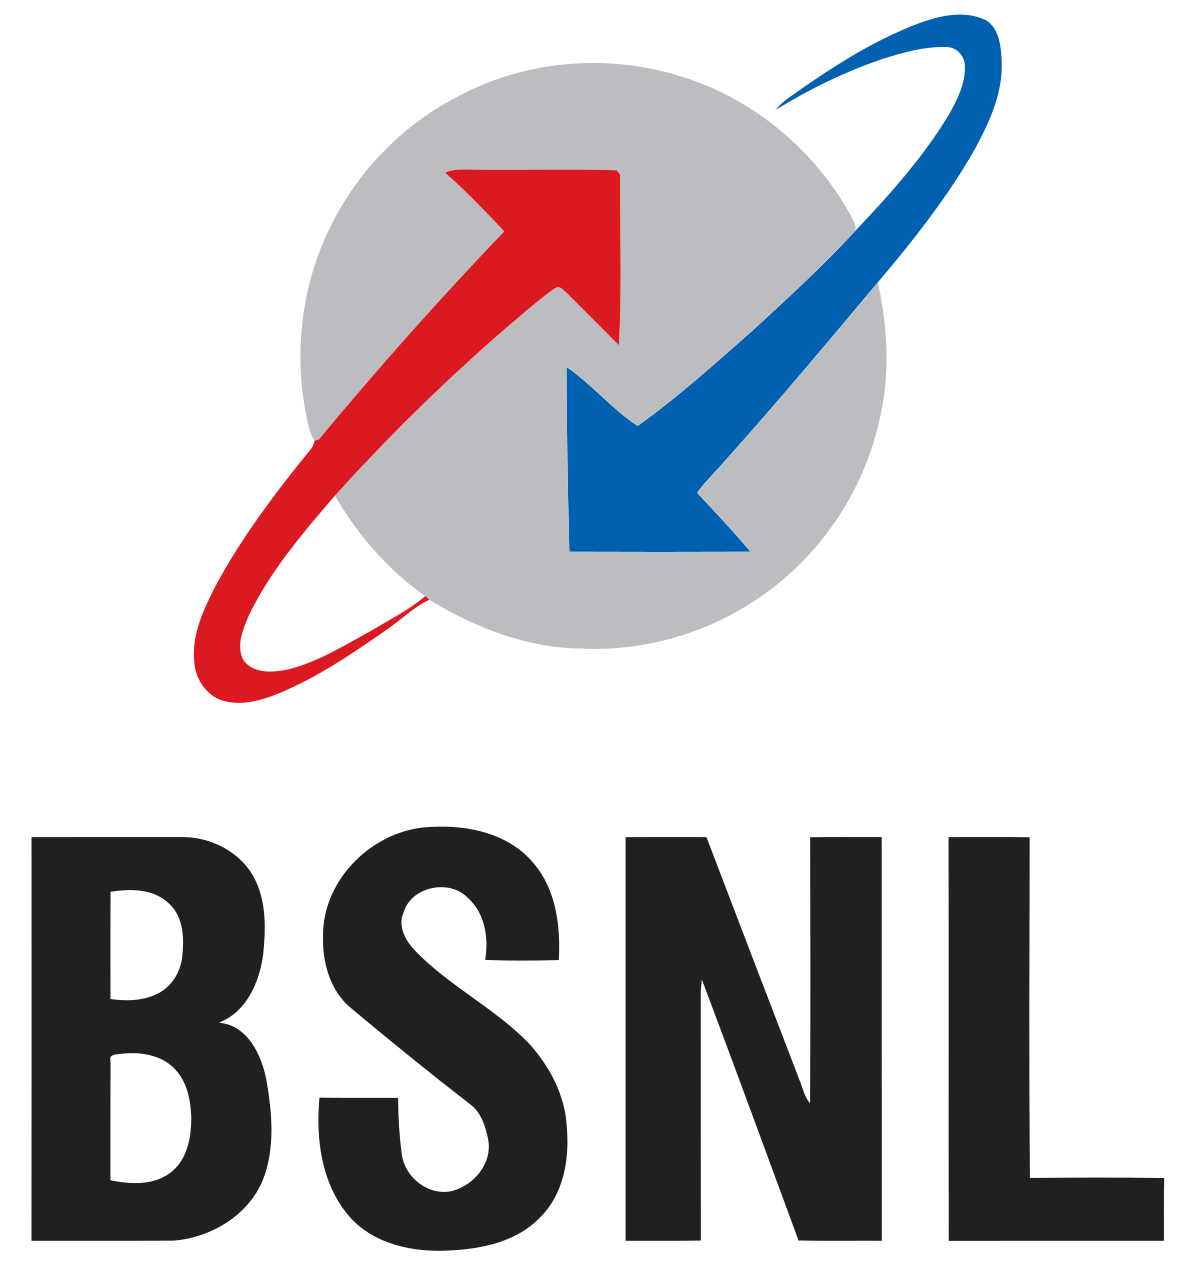 BSNL Prepaid Unlimited Plans 2019: Latest BSNL Prepaid Offer List & Best Unlimited Recharge Plans